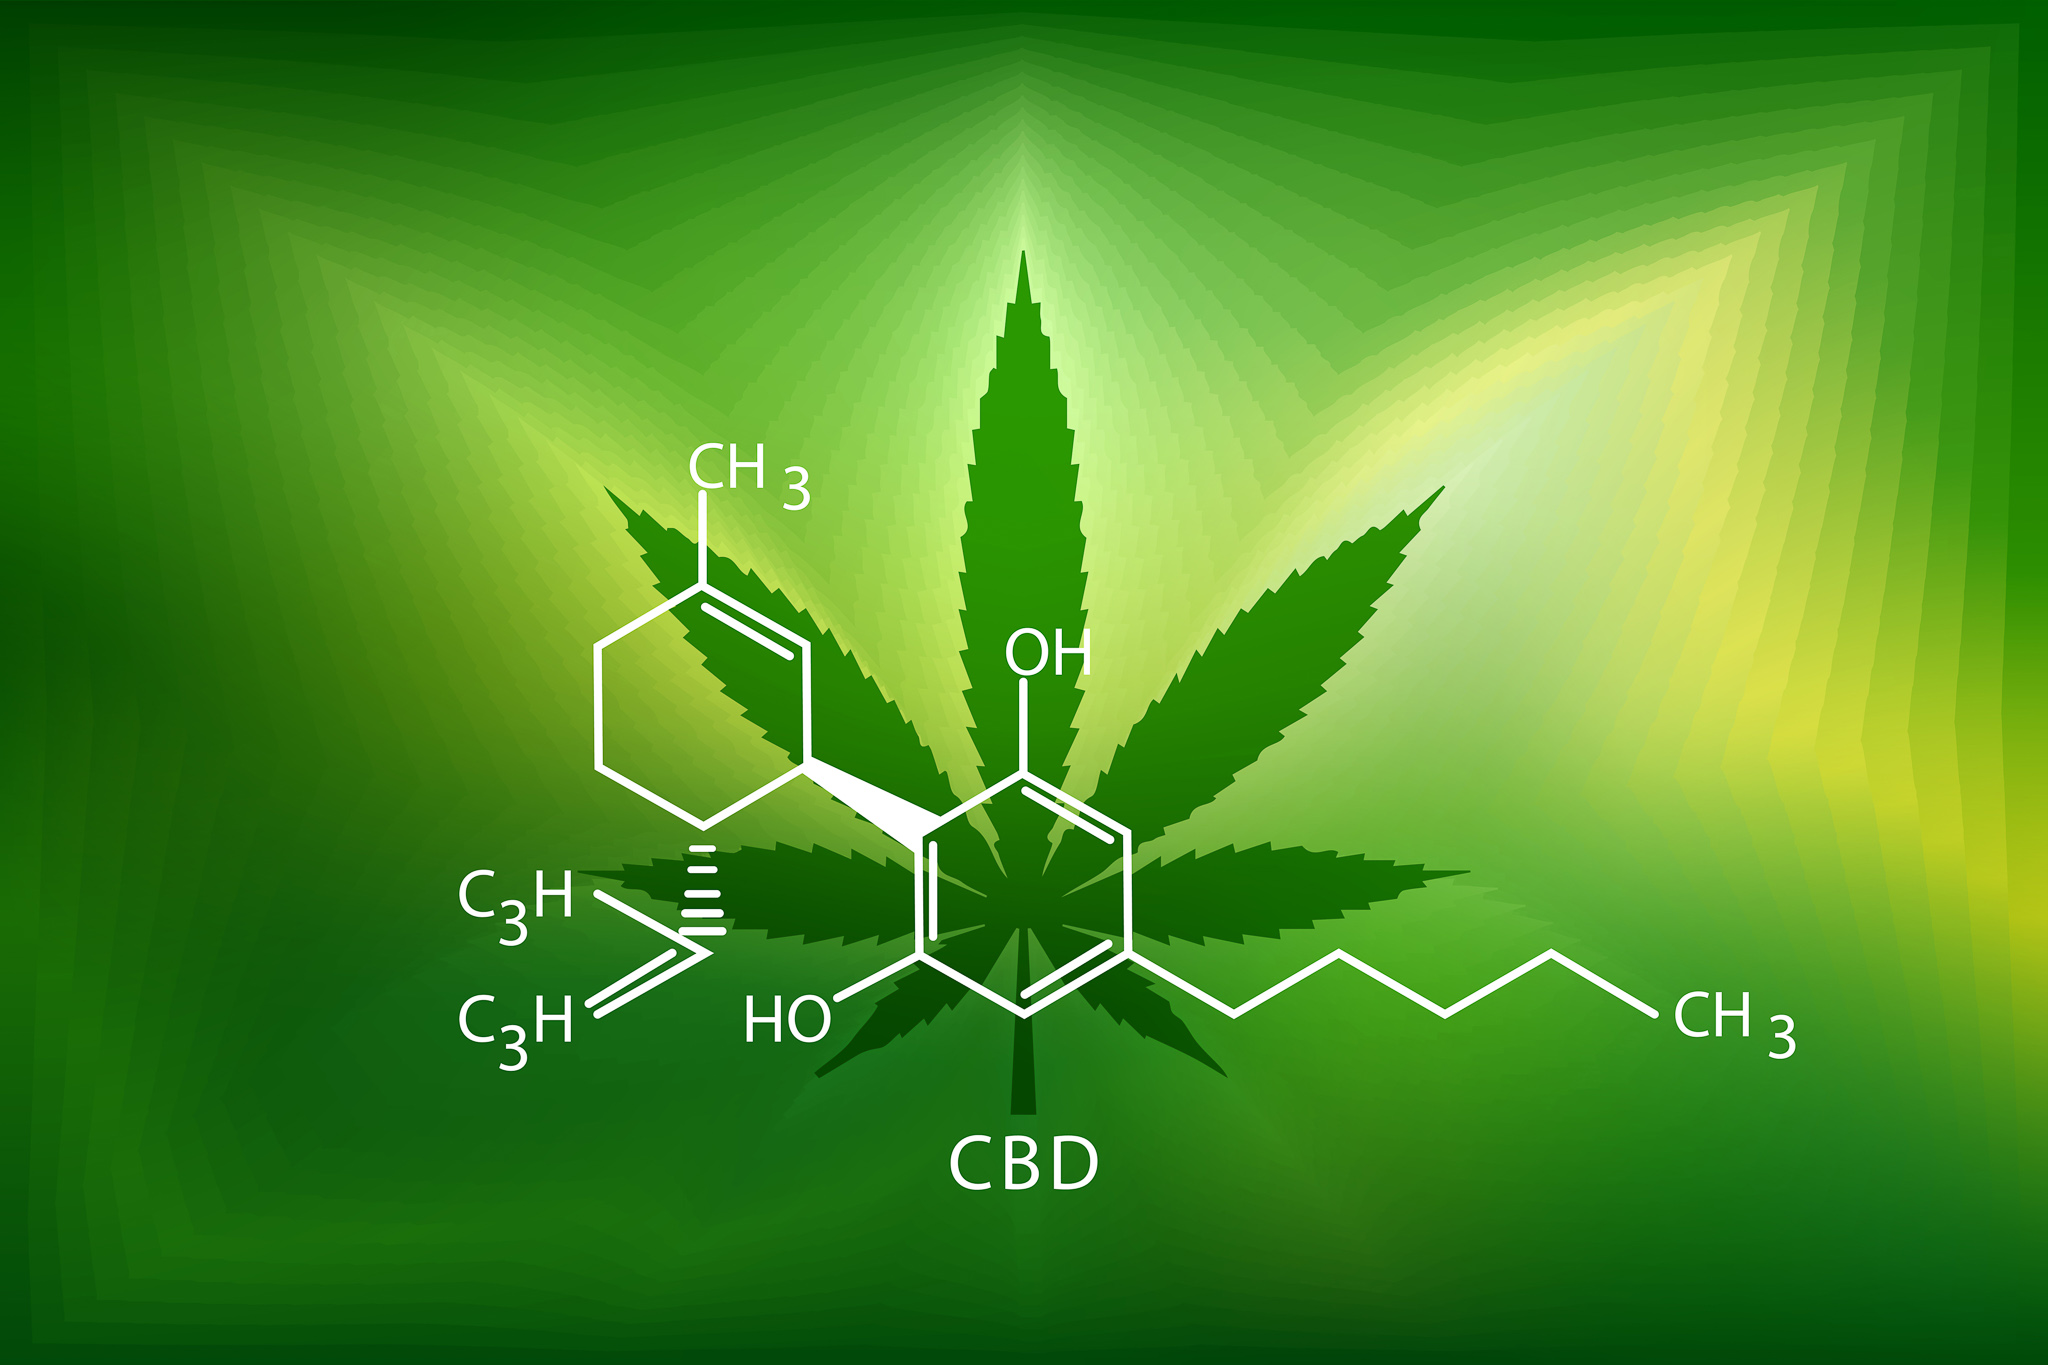 Chemical formula for CBD